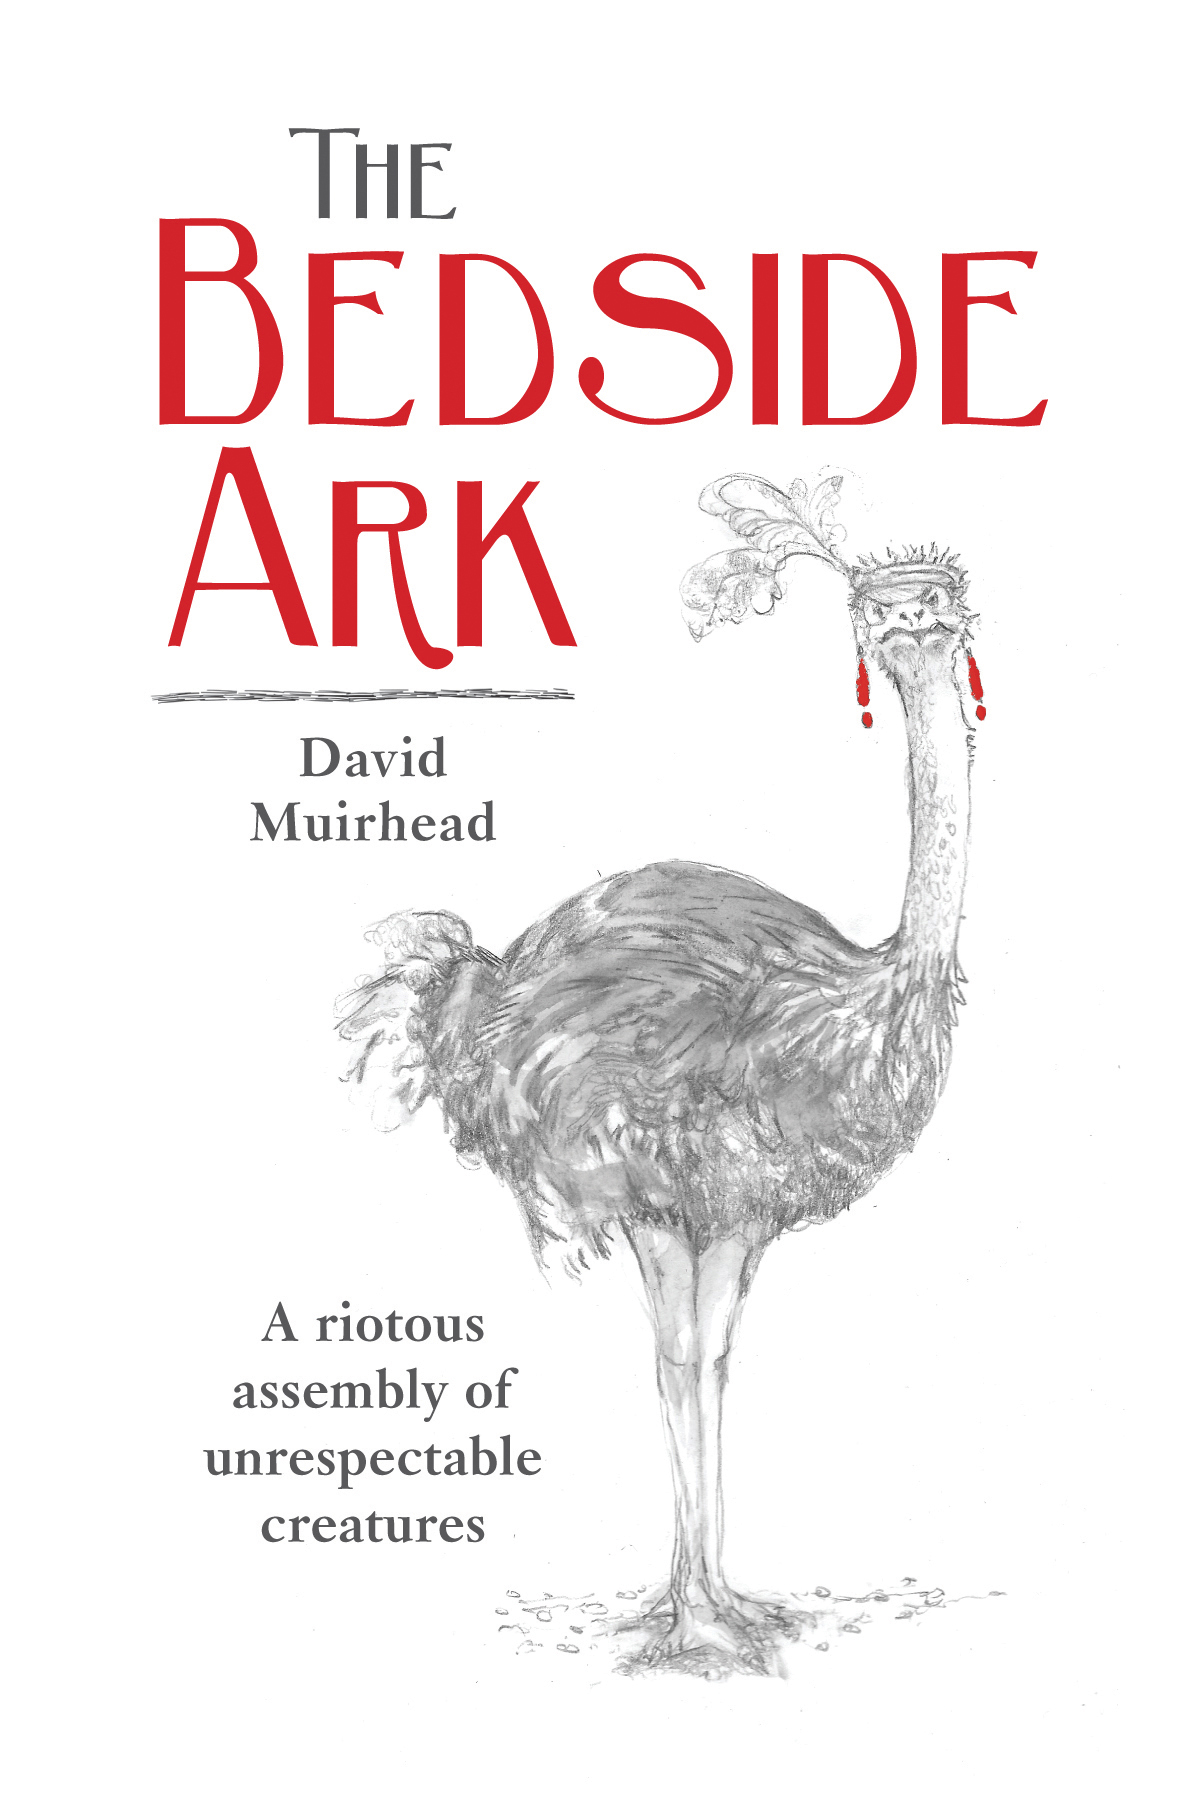 The Bedside Ark